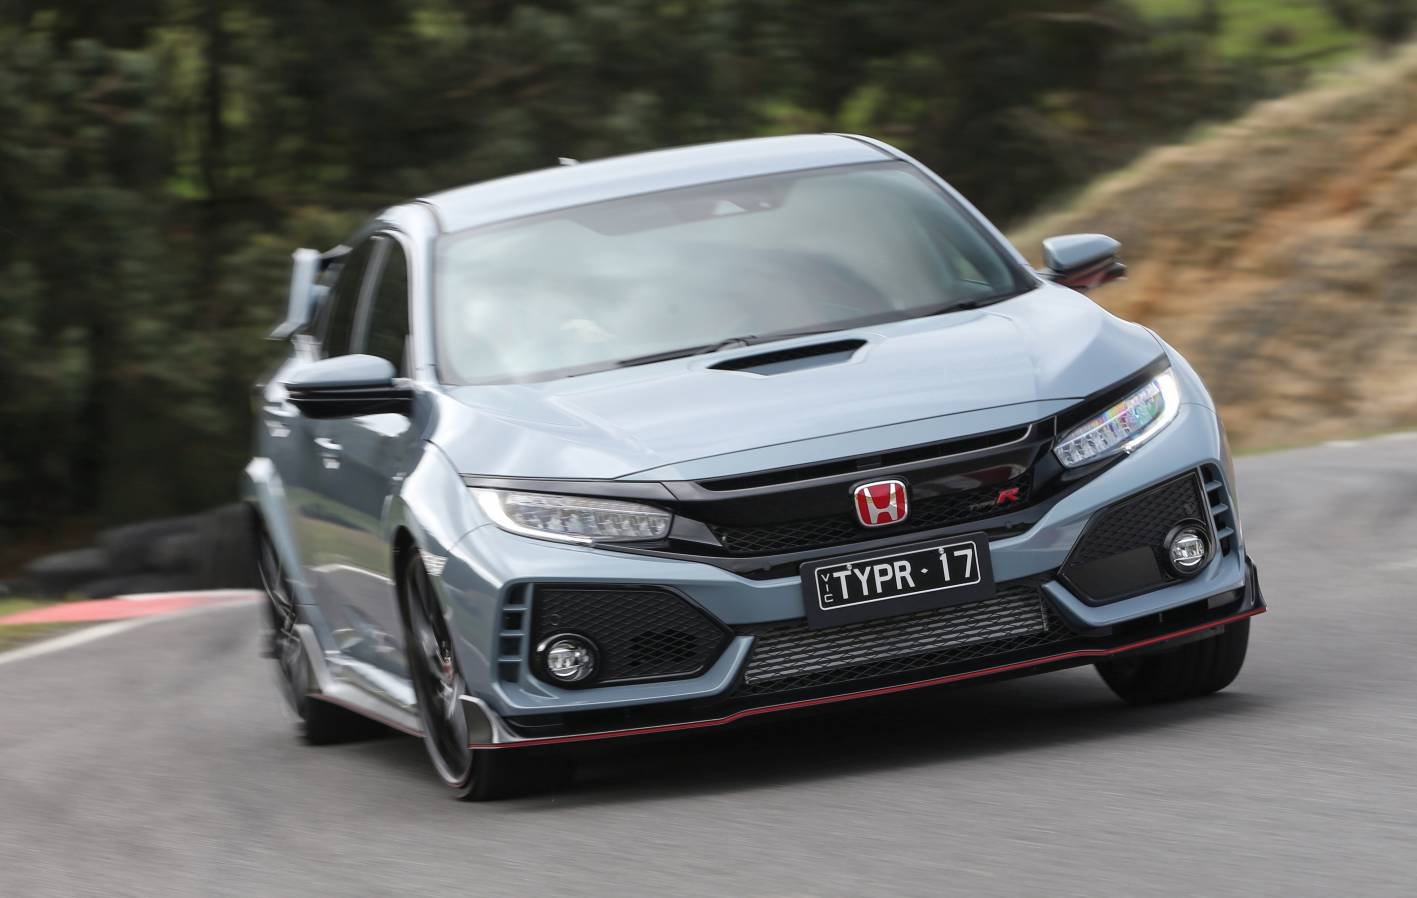 Honda Civic Type R- 1